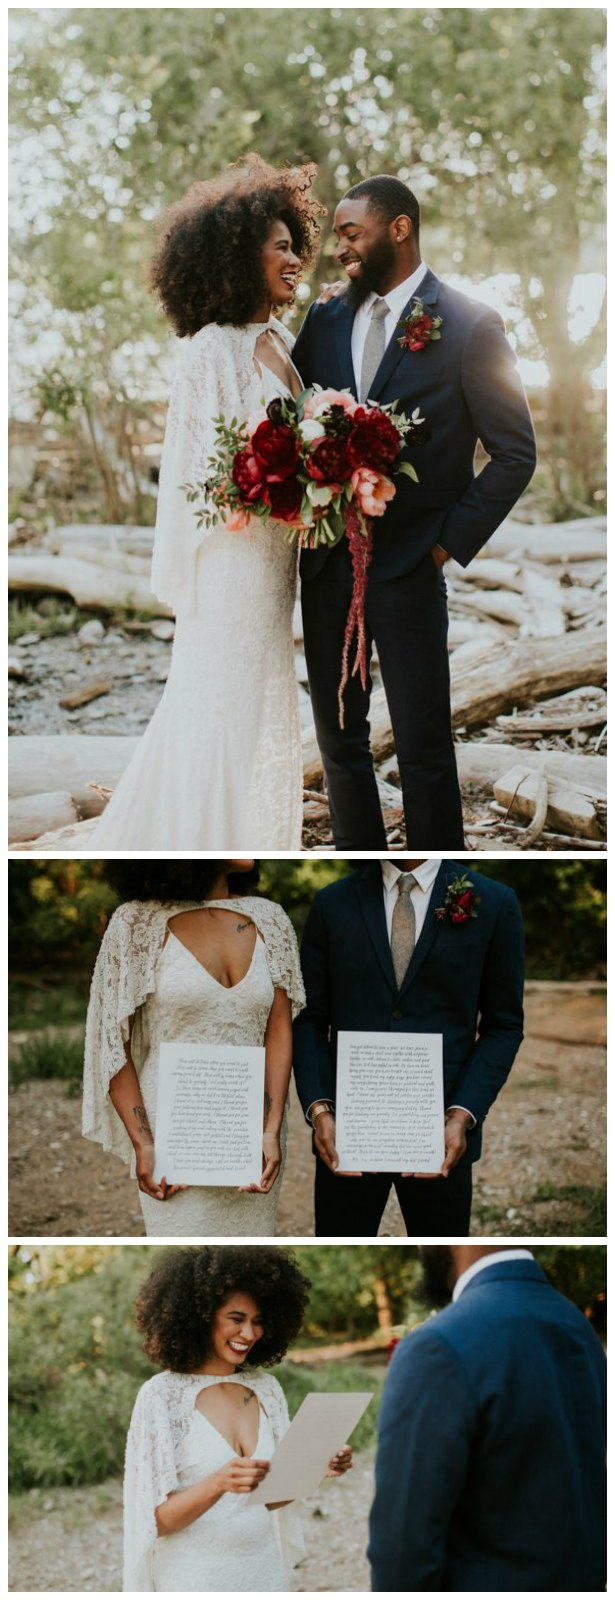 Wedding Vows - Erin Trimble Photography